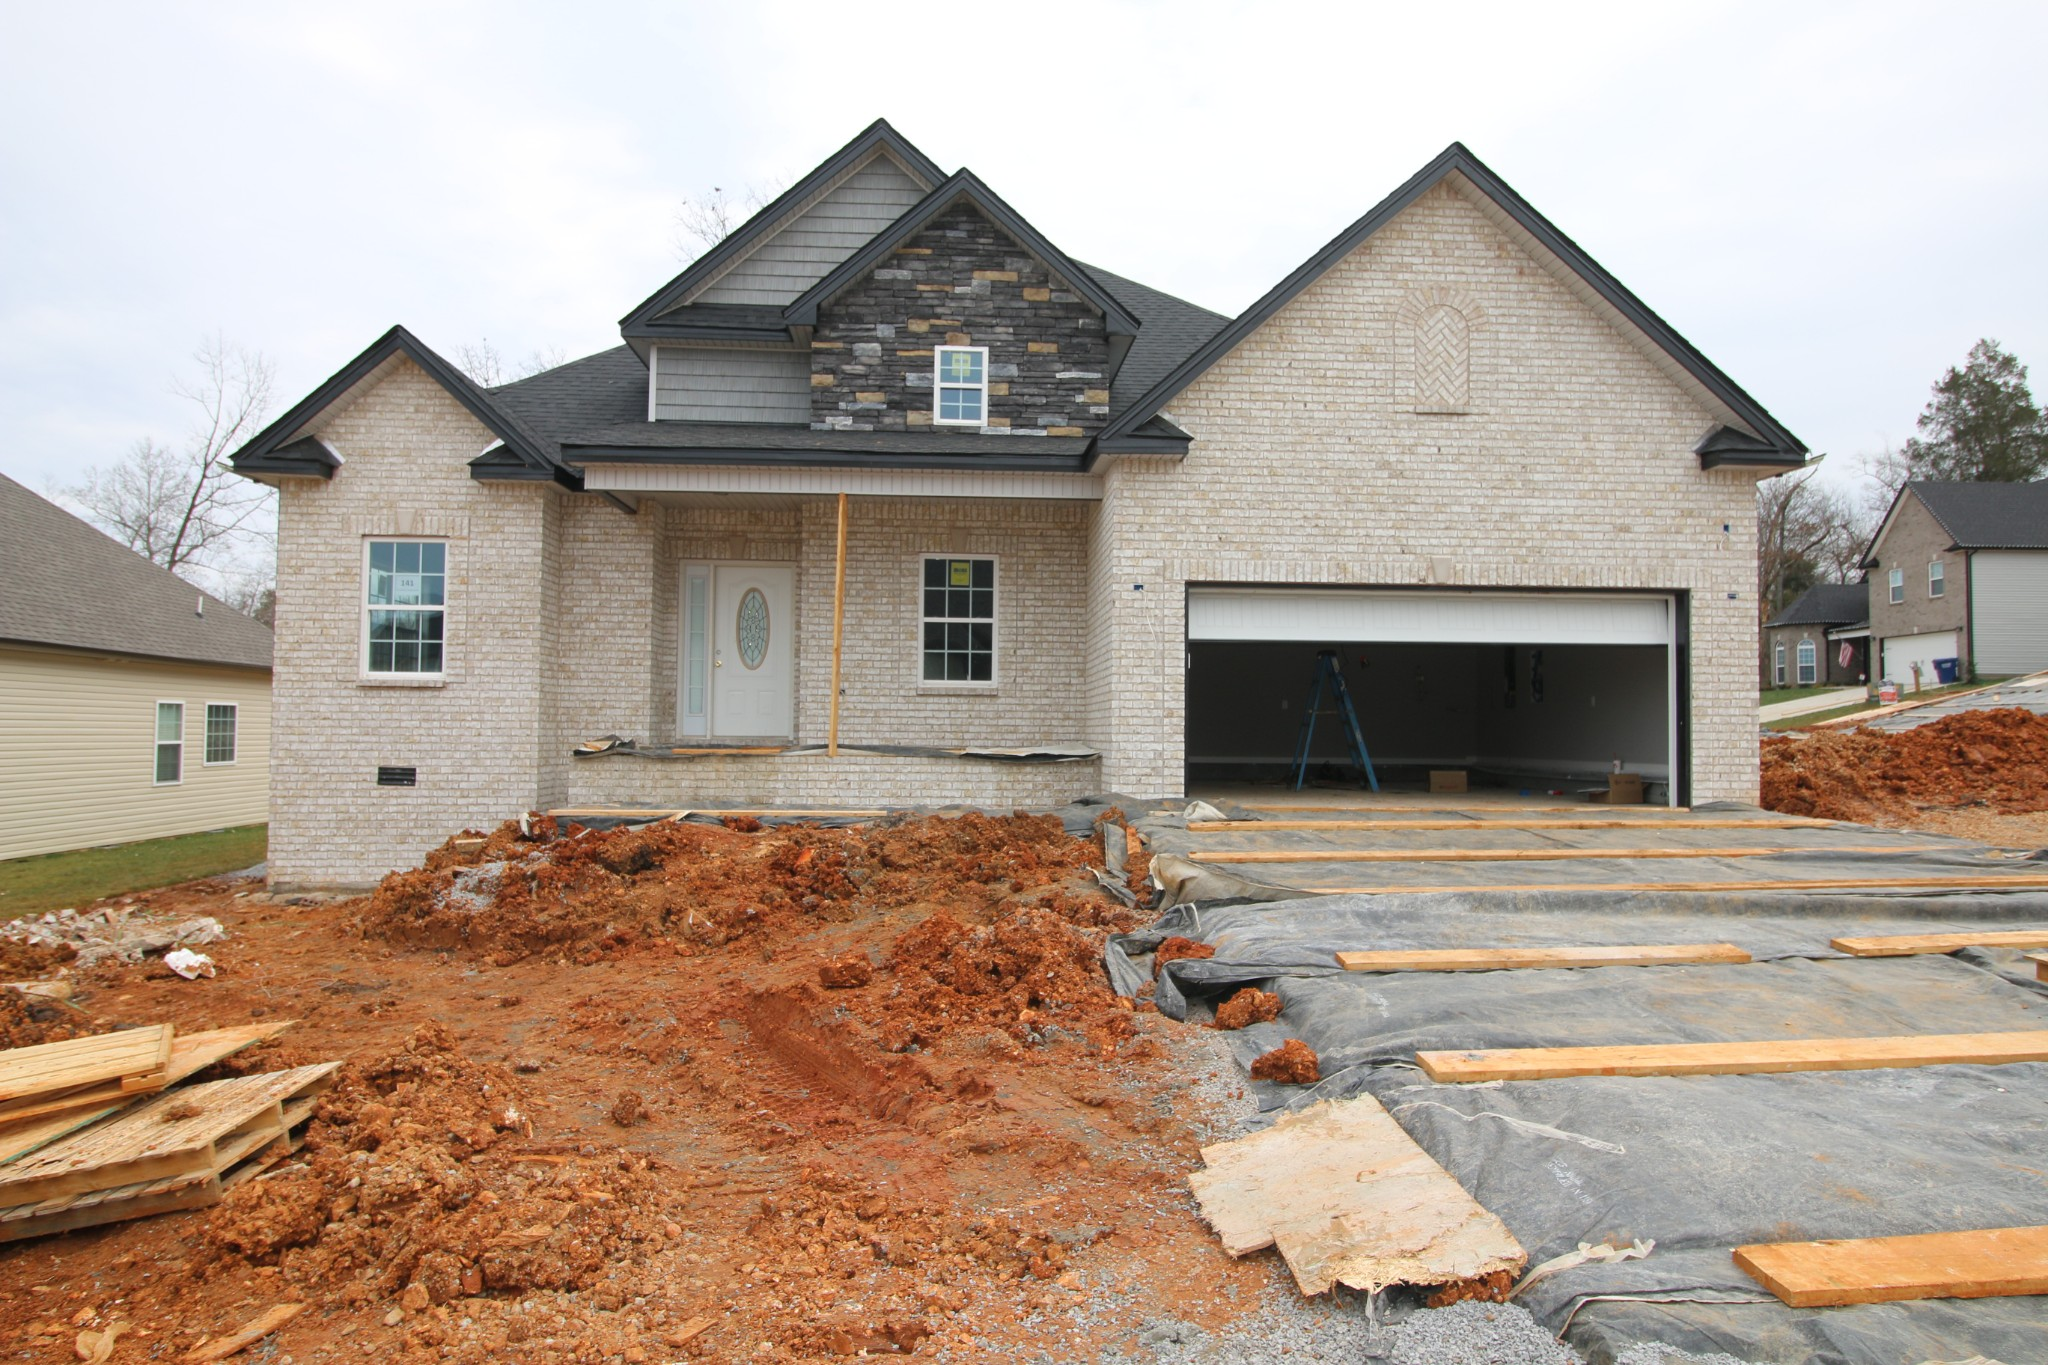 141 The Groves at Hearthstone, Clarksville, TN 37040 - Clarksville, TN real estate listing